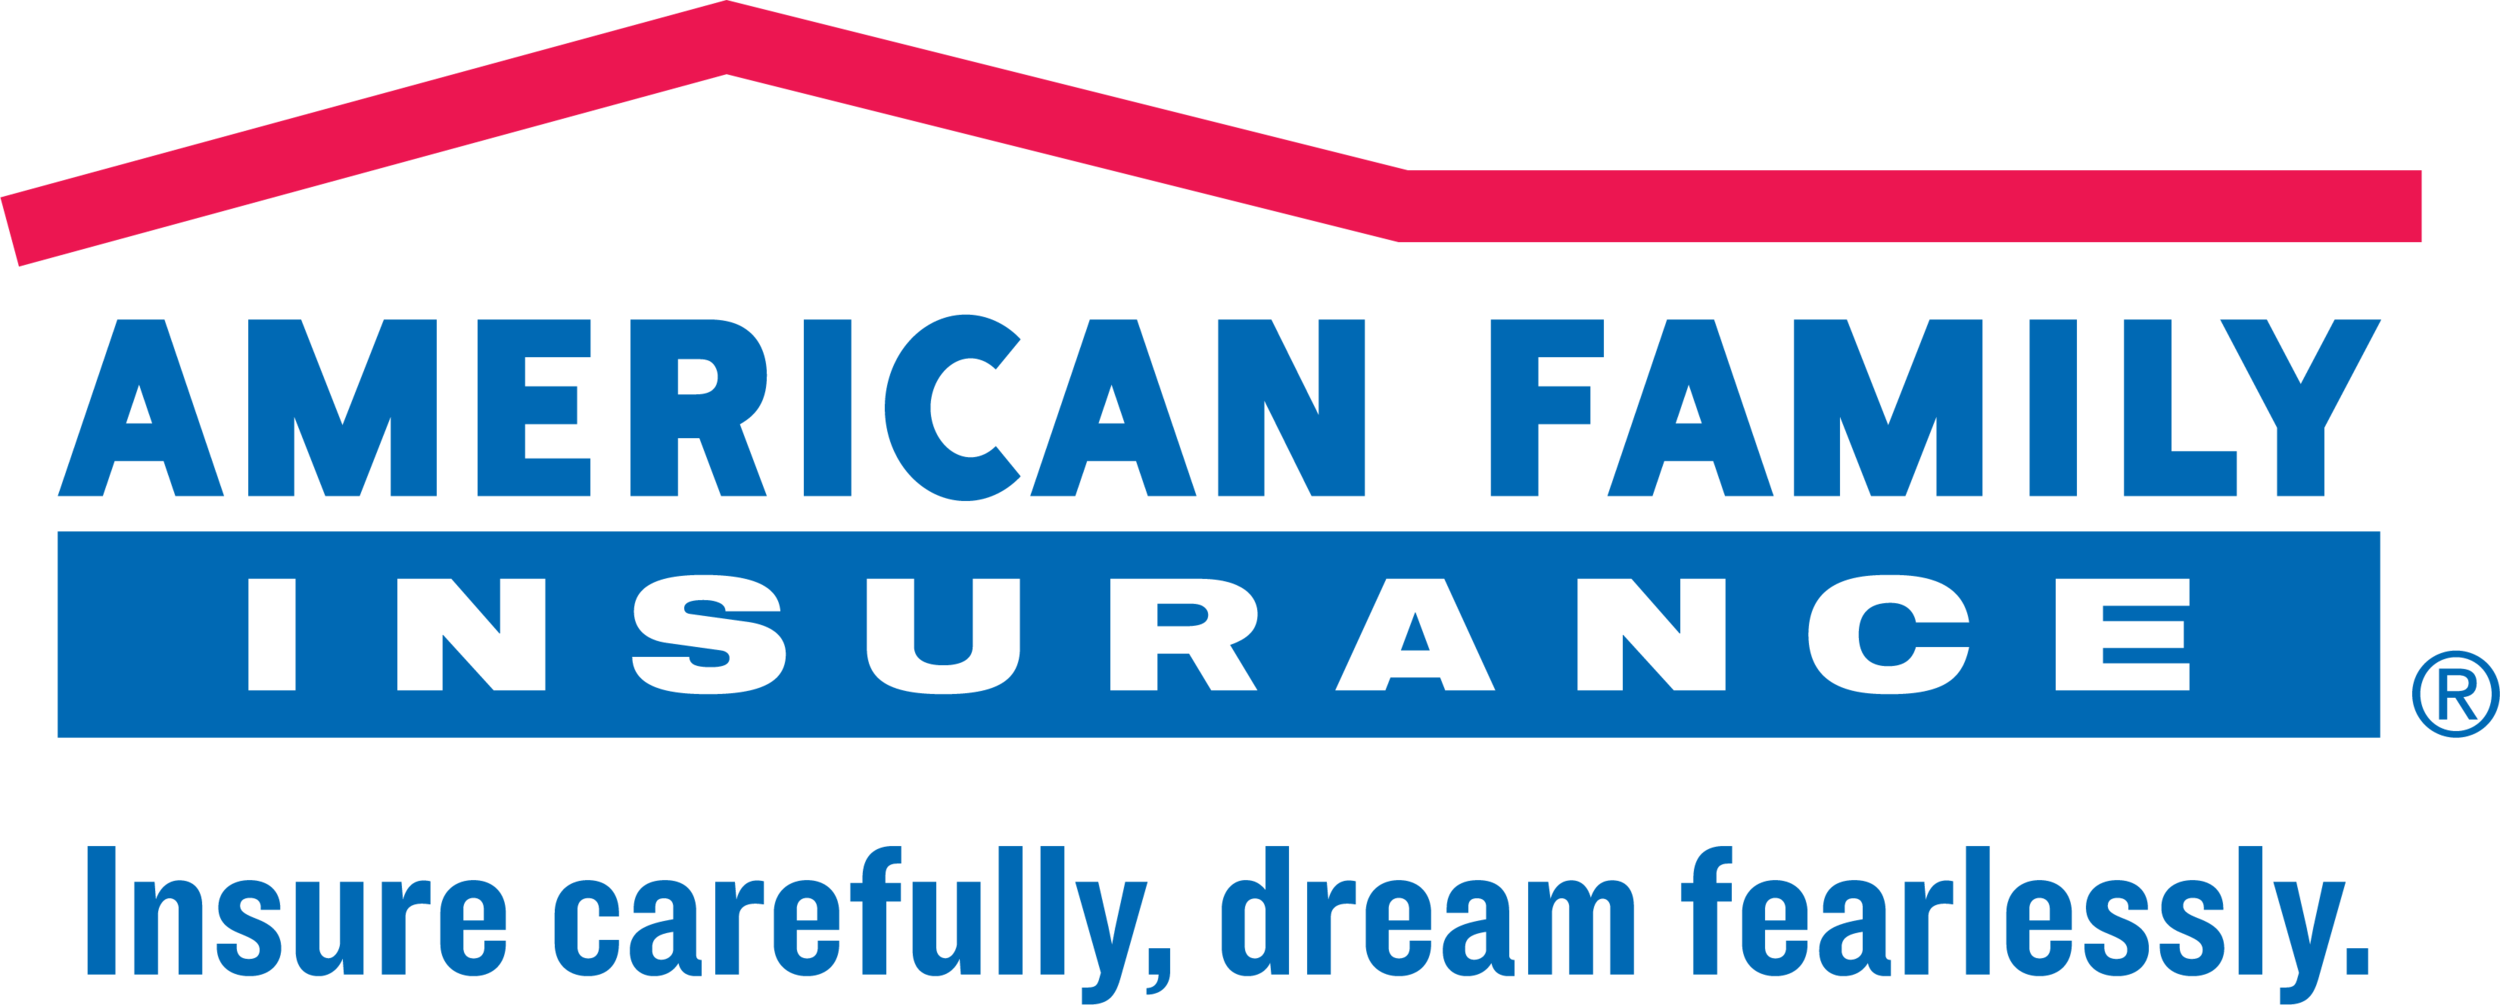 American Family Insurance.png